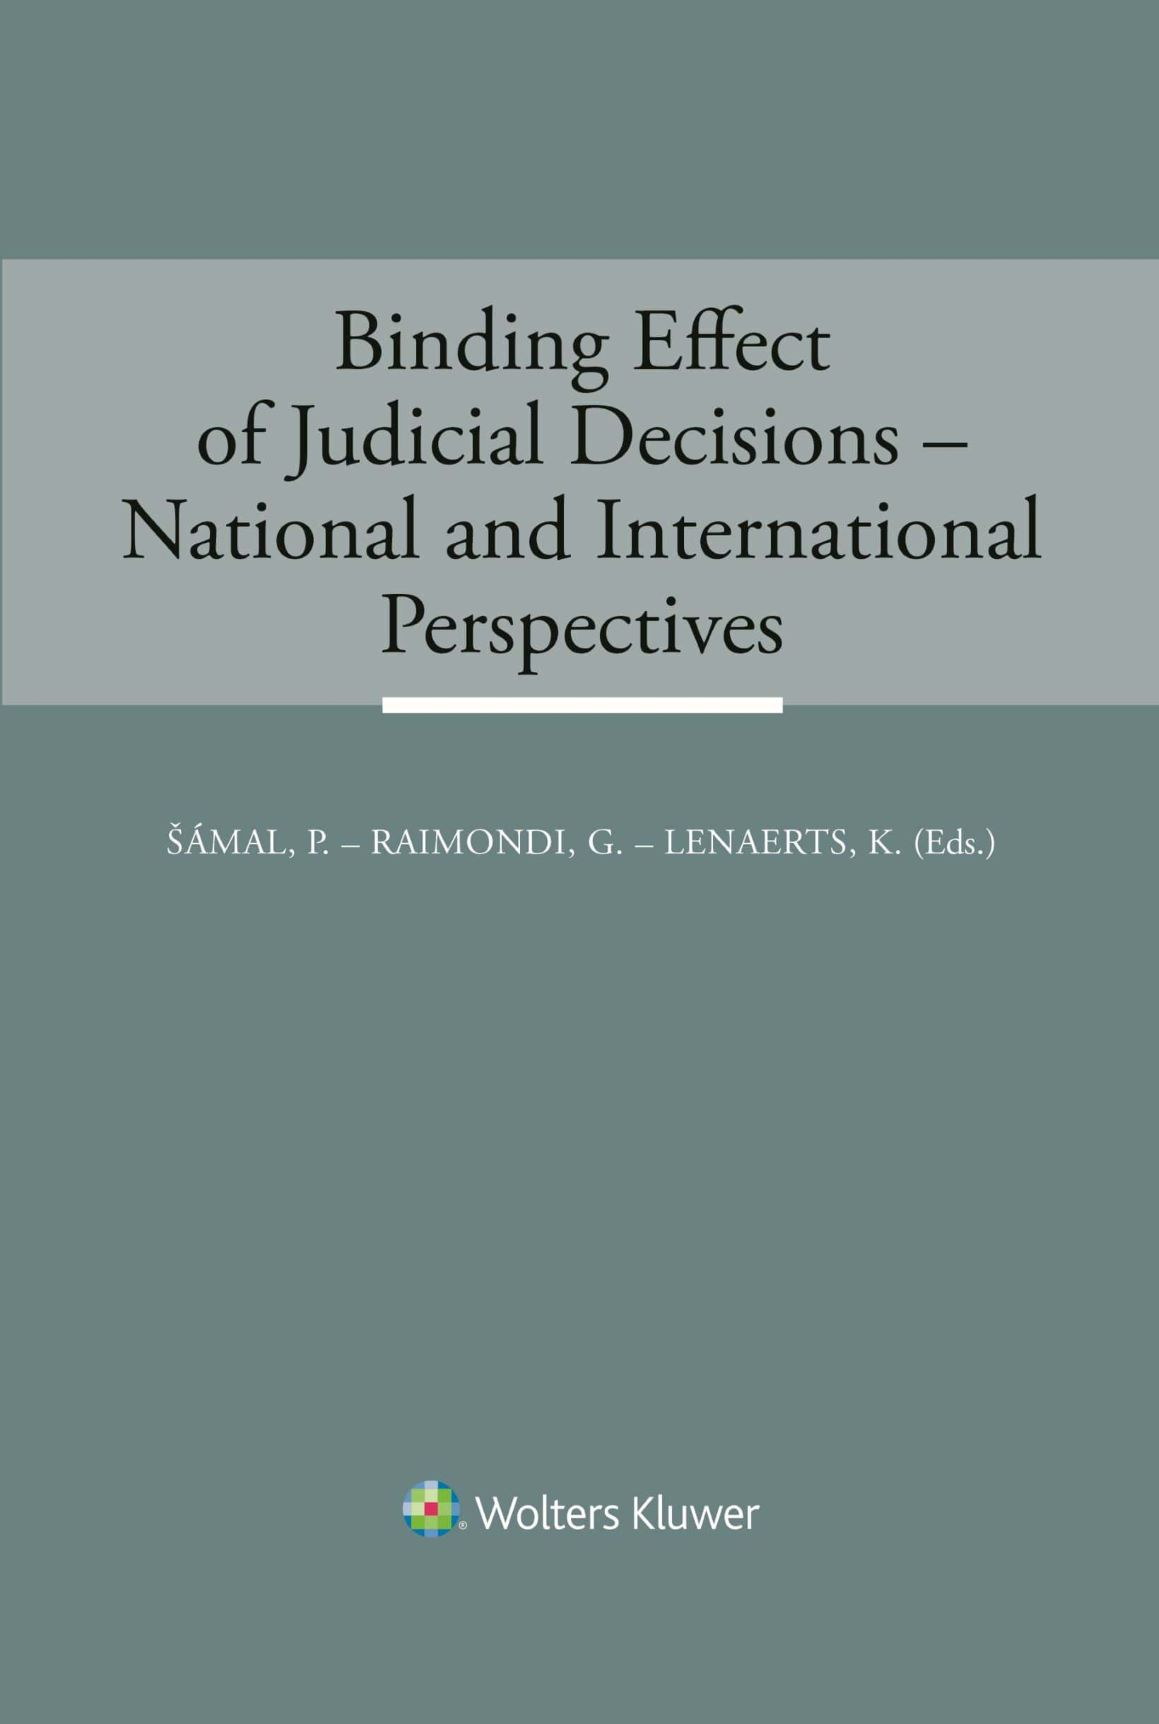 Binding Effects of Judicial Decisions - National and International Perspectives